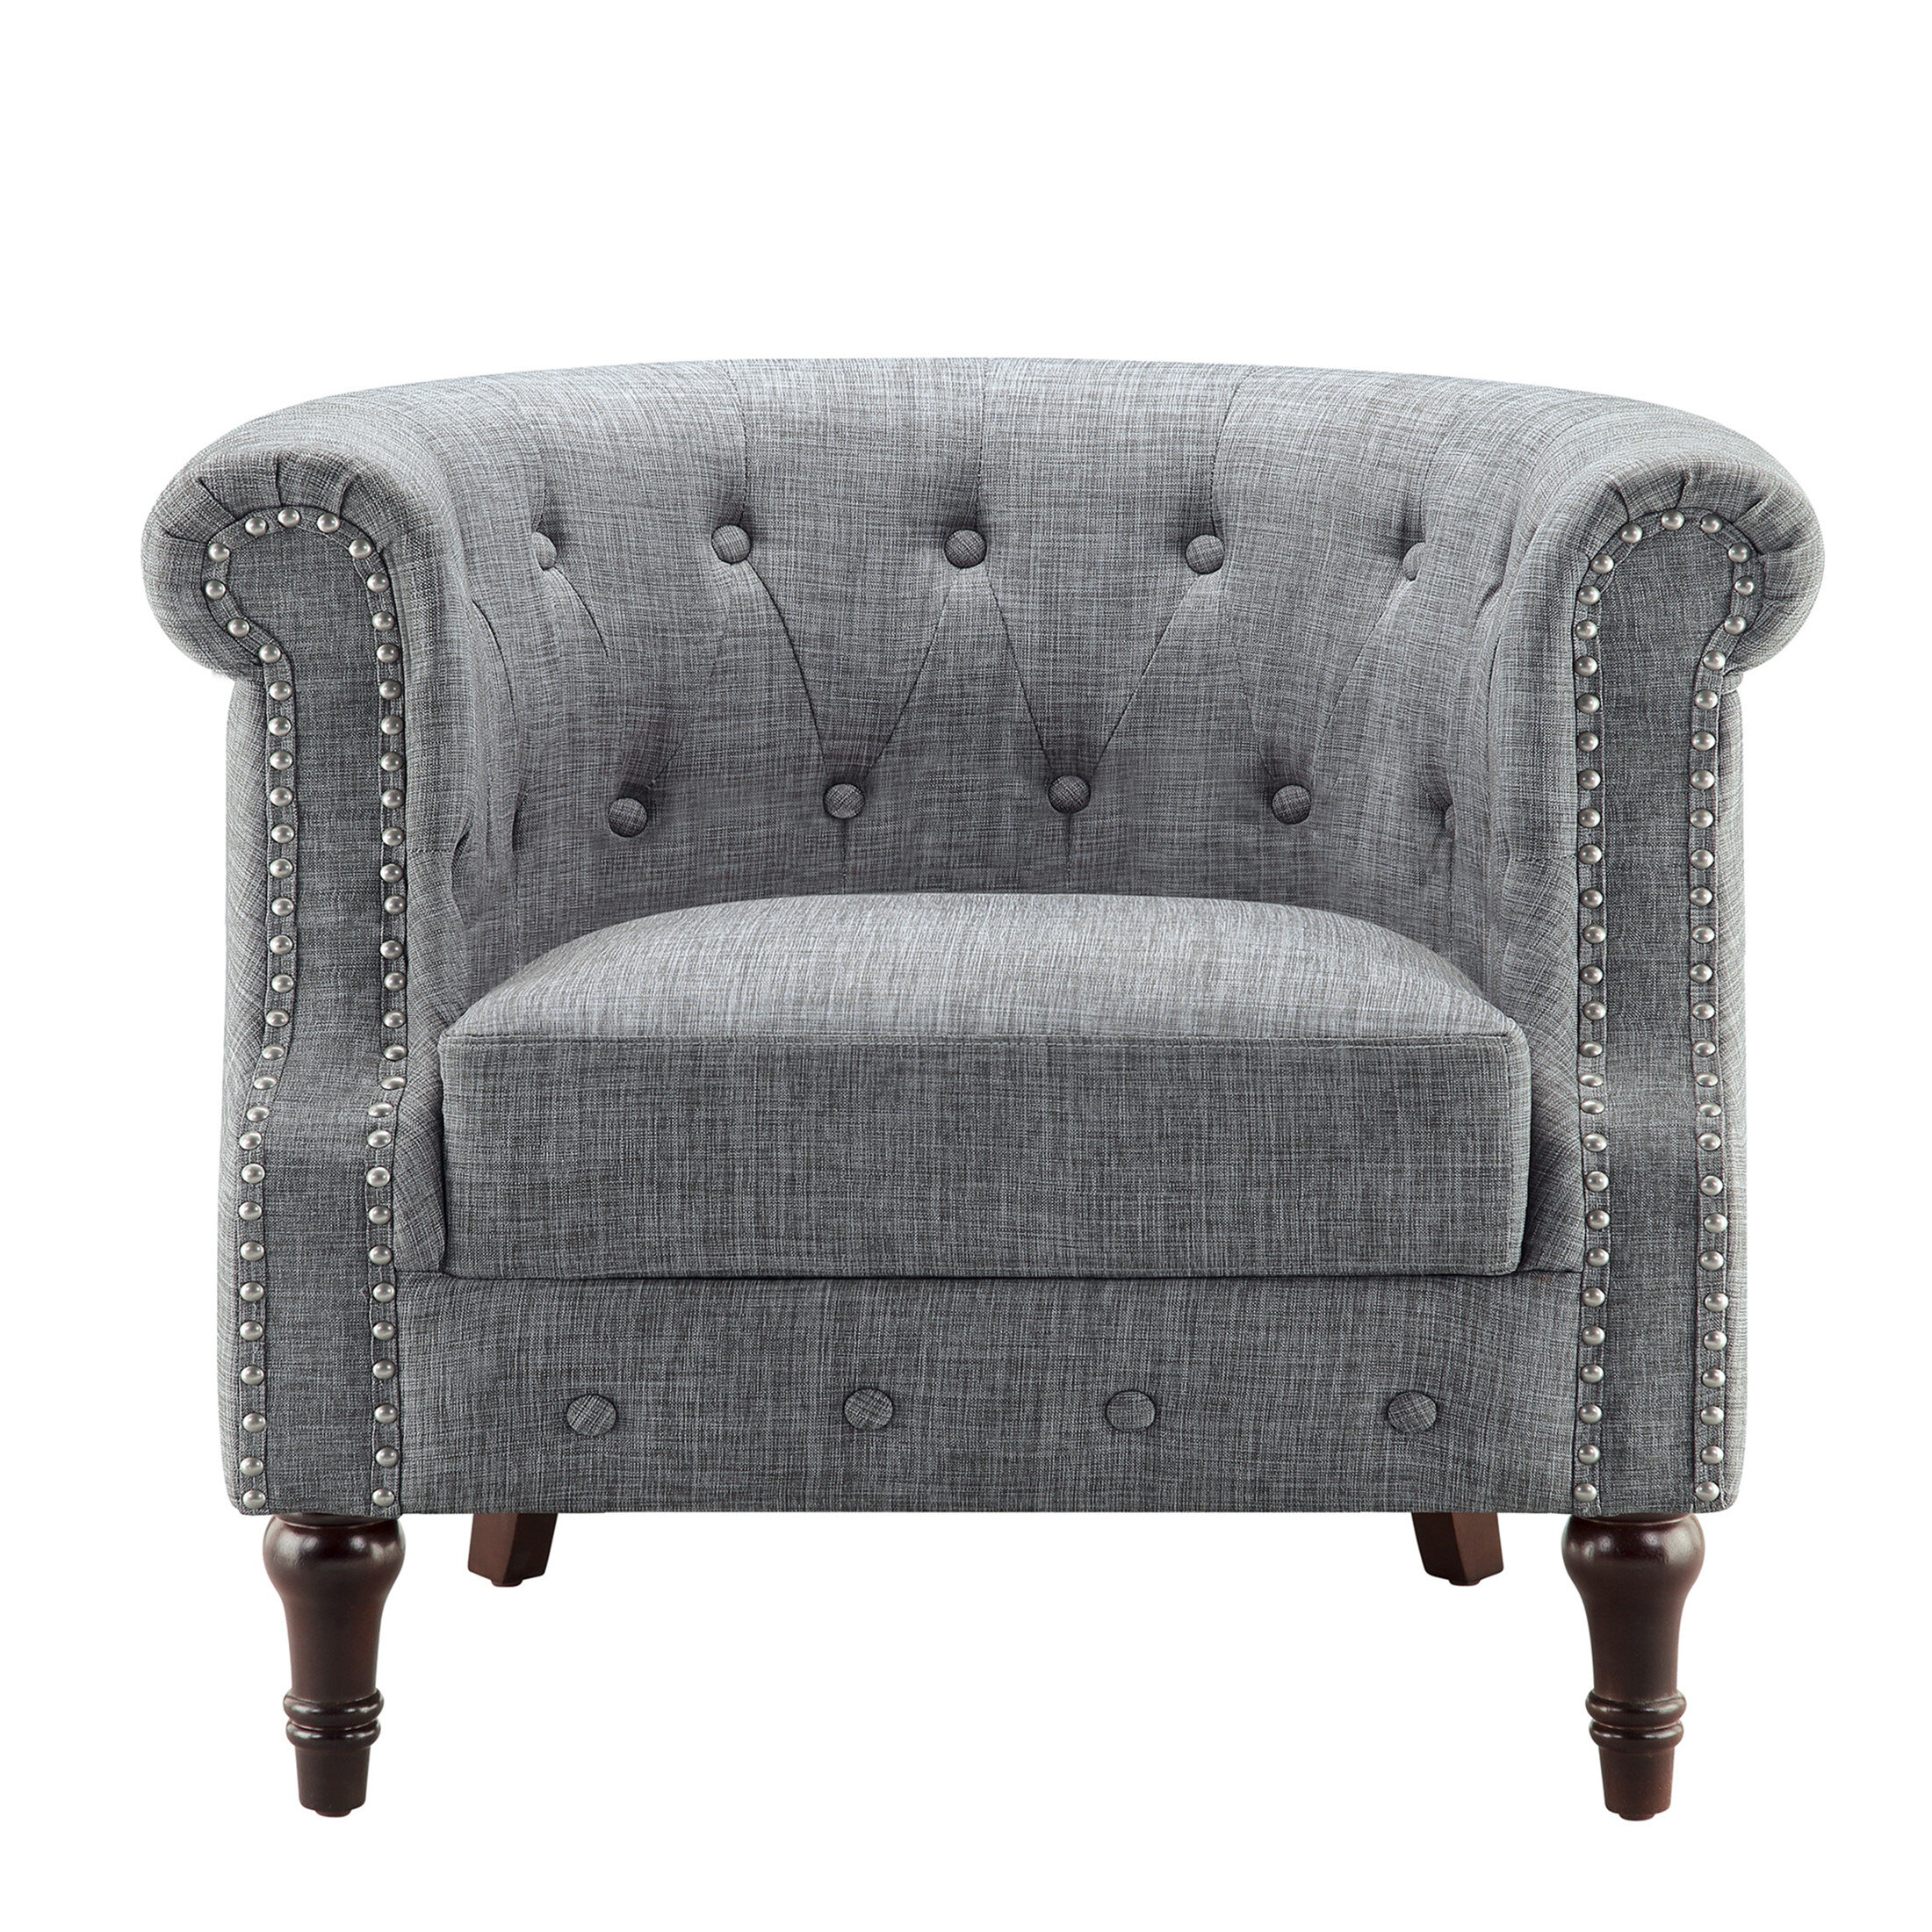 Chesterfield Espresso Wood Accent Chairs You'Ll Love In 2021 In Kjellfrid Chesterfield Chairs (View 11 of 15)